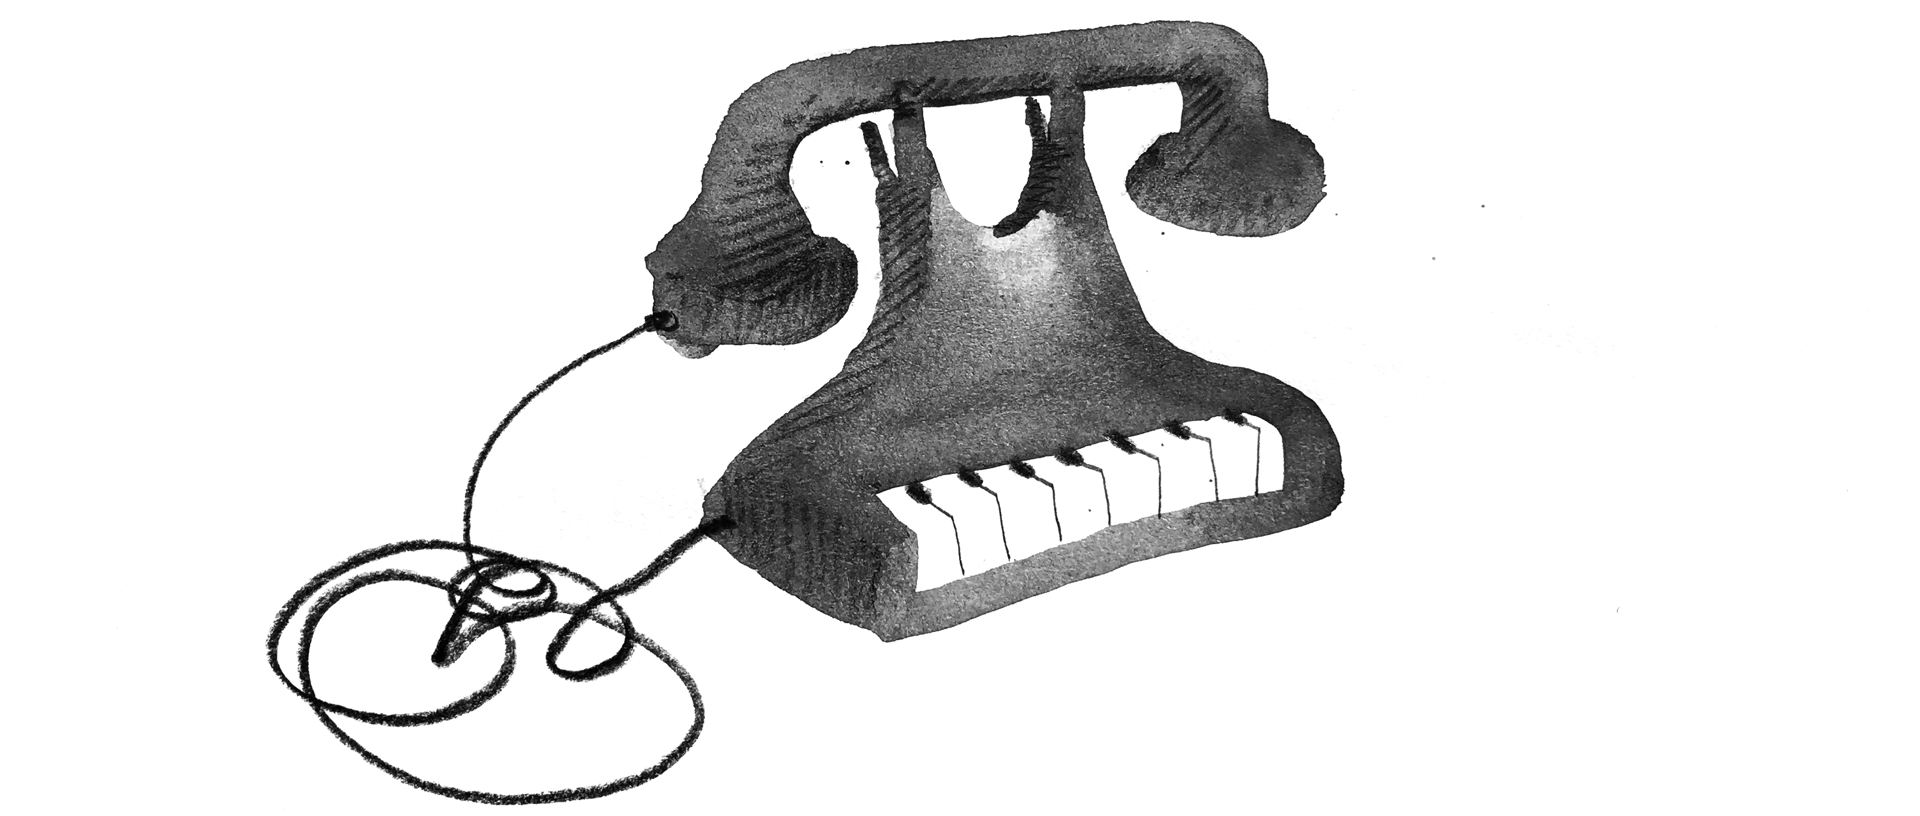 Illustration: An antique telephone holds a corded handset aloft in it cradle above piano keys where a number pad or rotary dial would normally sit.